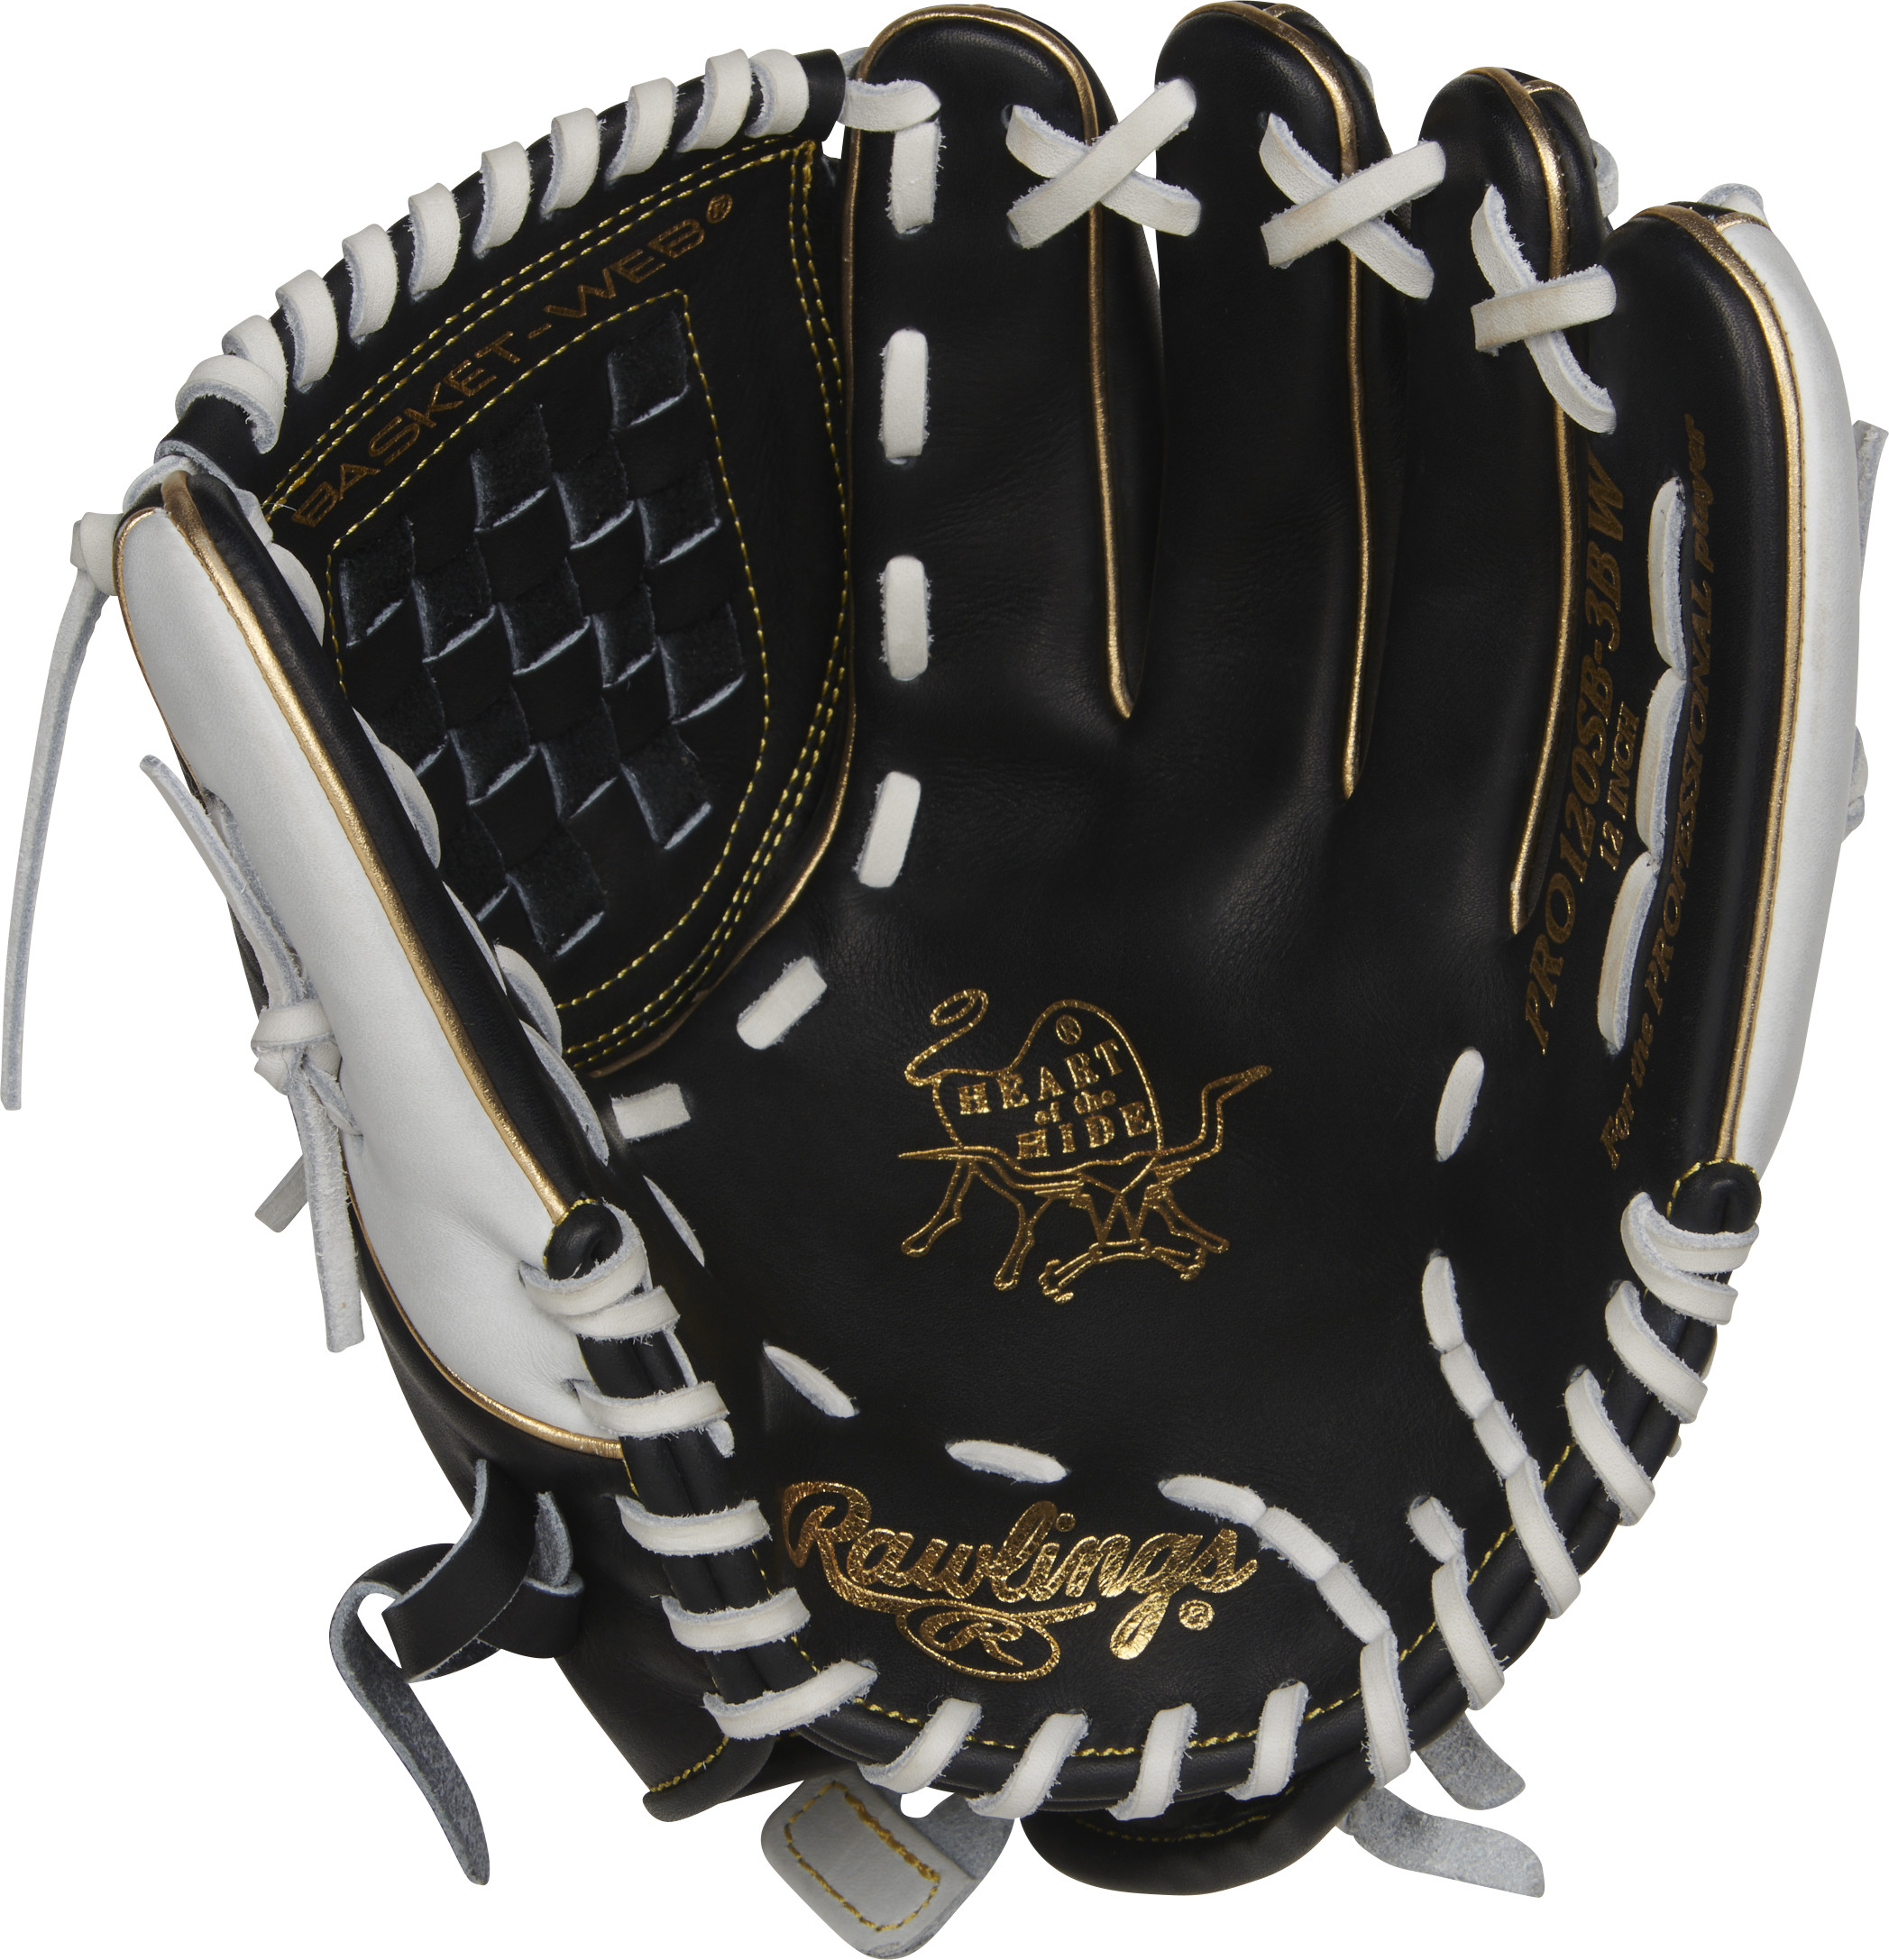 http://www.bestbatdeals.com/images/gloves/rawlings/PRO120SB-3BW-1.jpg